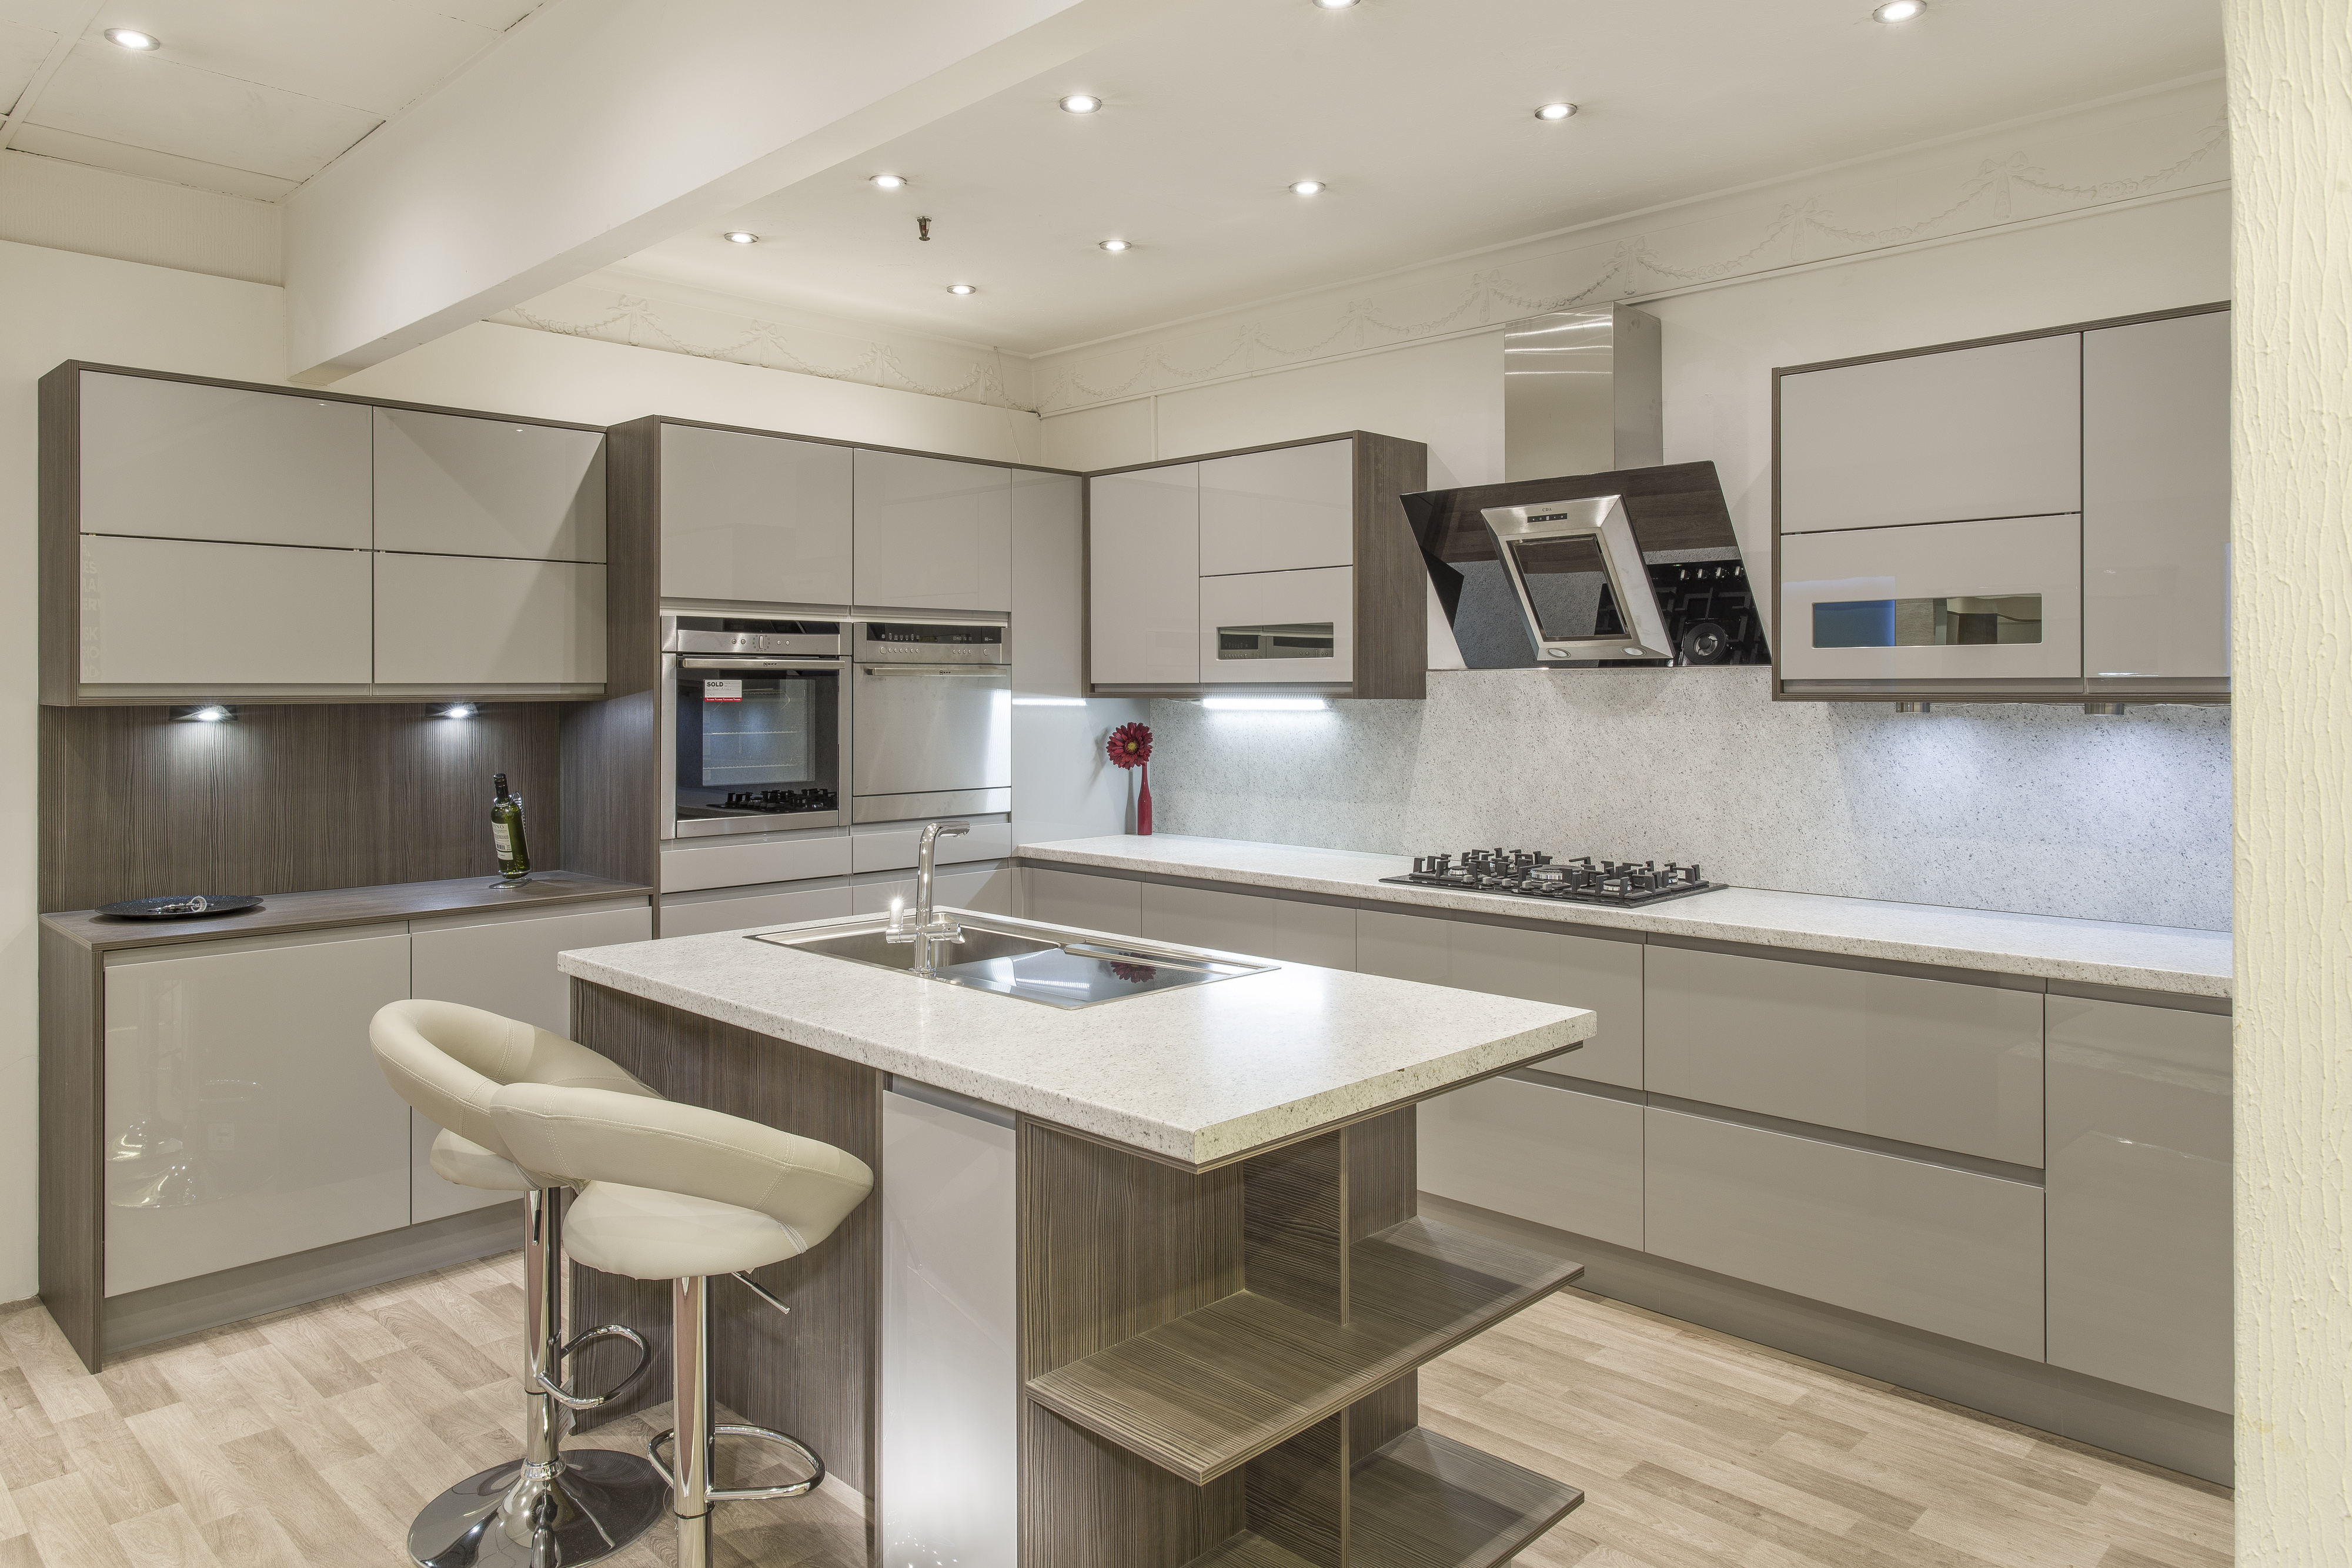 Kitchen Ideas Uk 2017 whats hot and whats not in 2017 kitchen trends. black kitchens are